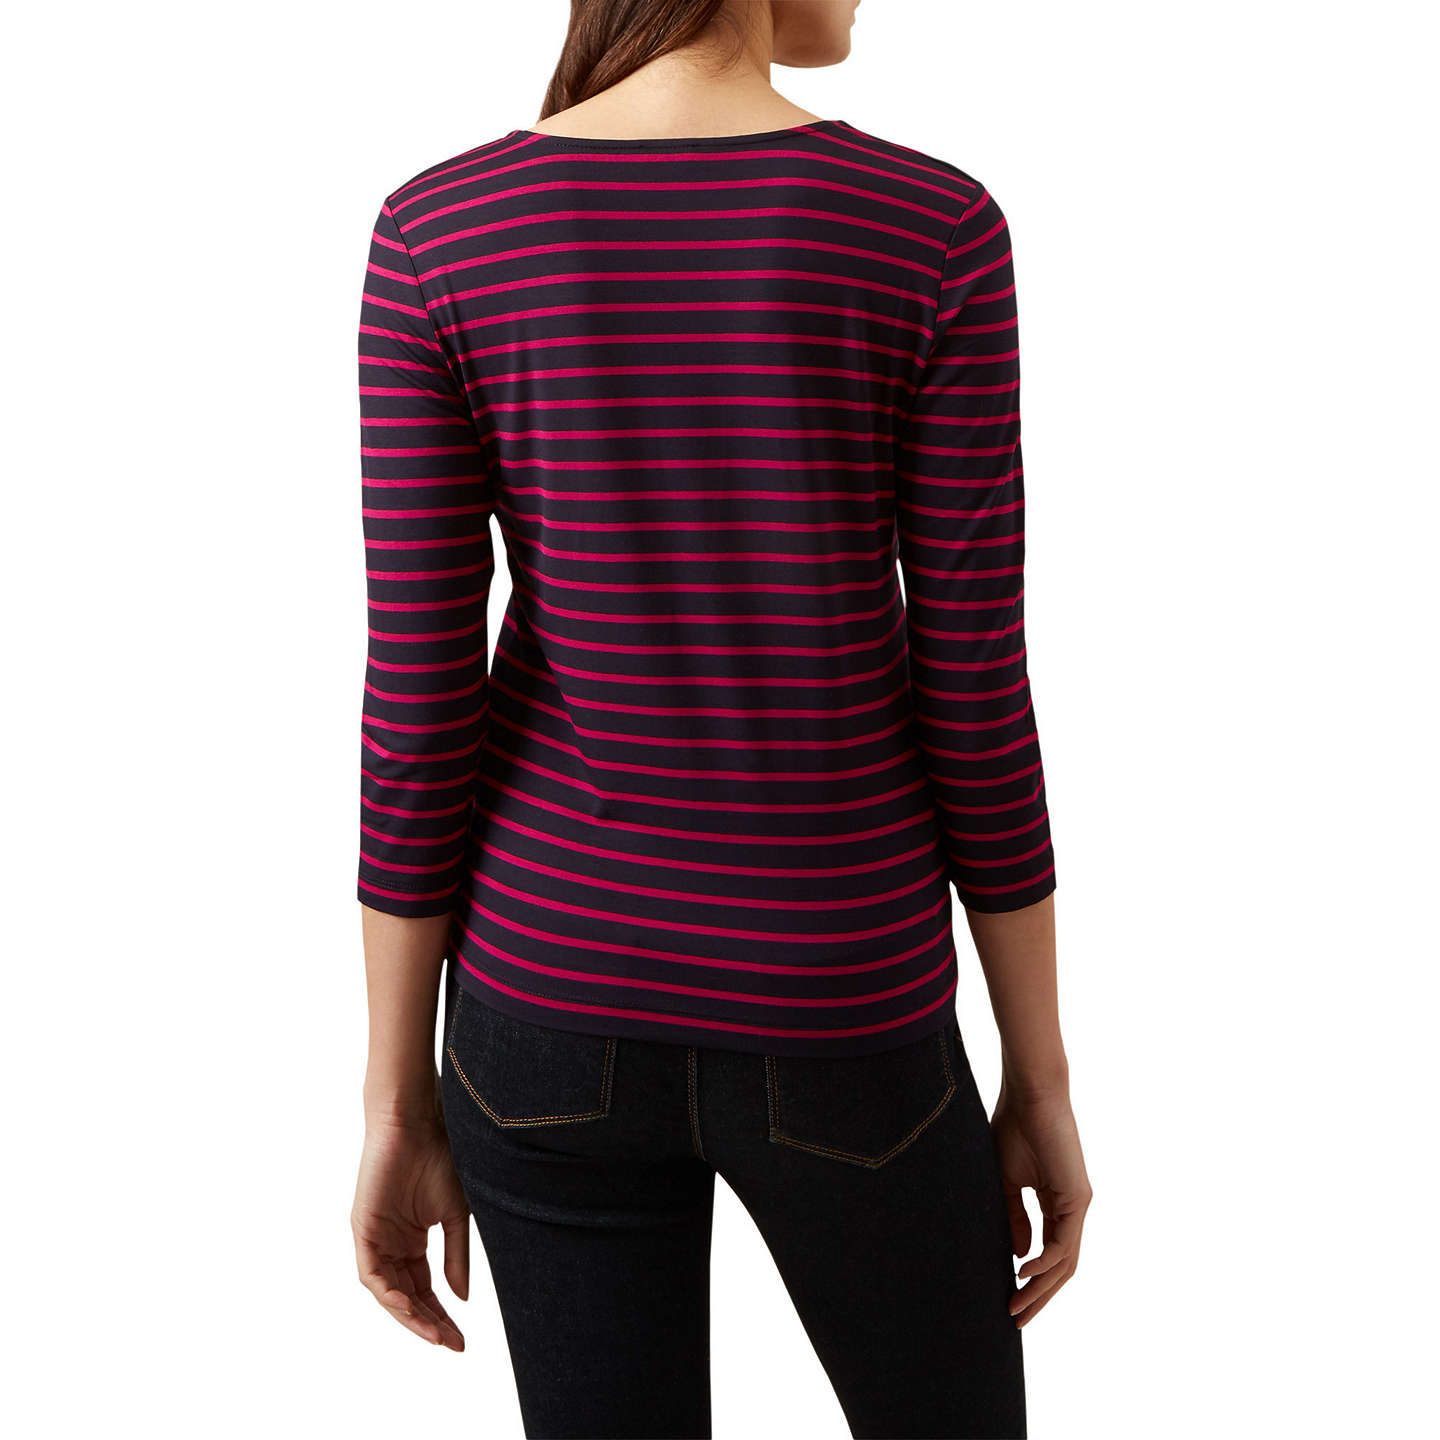 BuyHobbs Striped Daisy Top, Navy/Hot Pink, XS Online at johnlewis.com